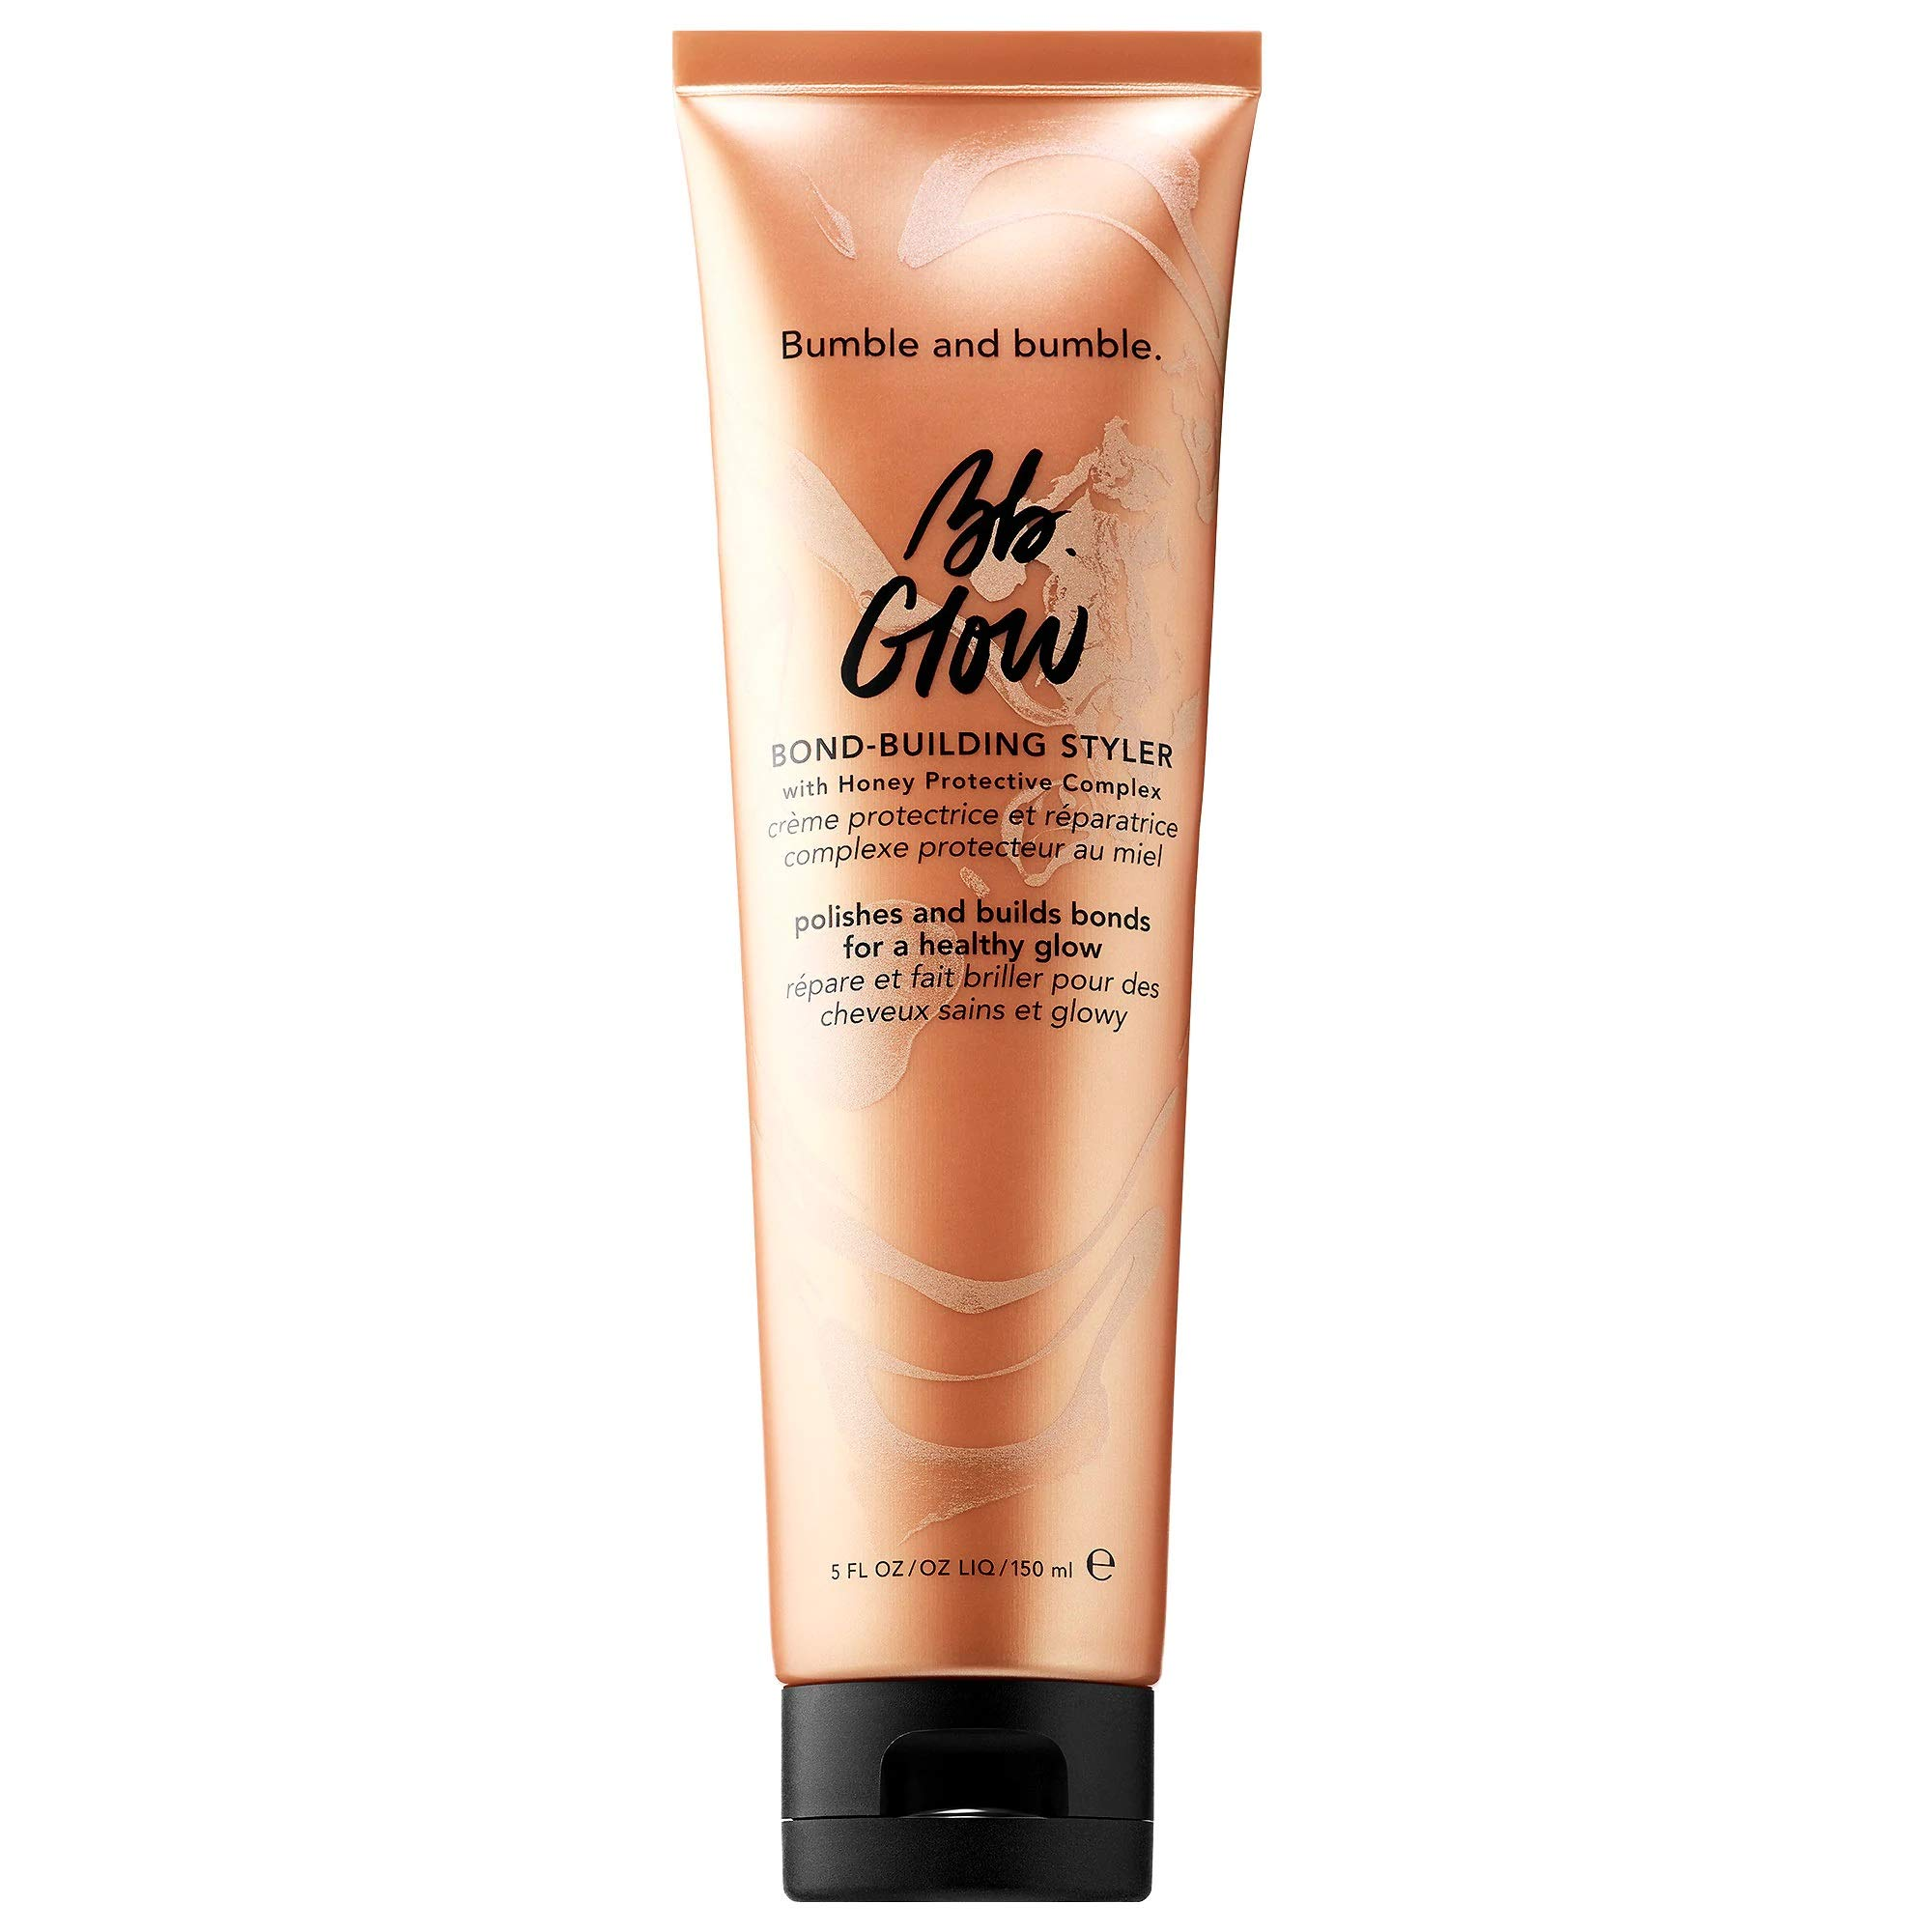 BUMBLE AND BUMBLE Bb. Glow Bond-Building Styler - 5 Fl. Oz. by Bumble and Bumble